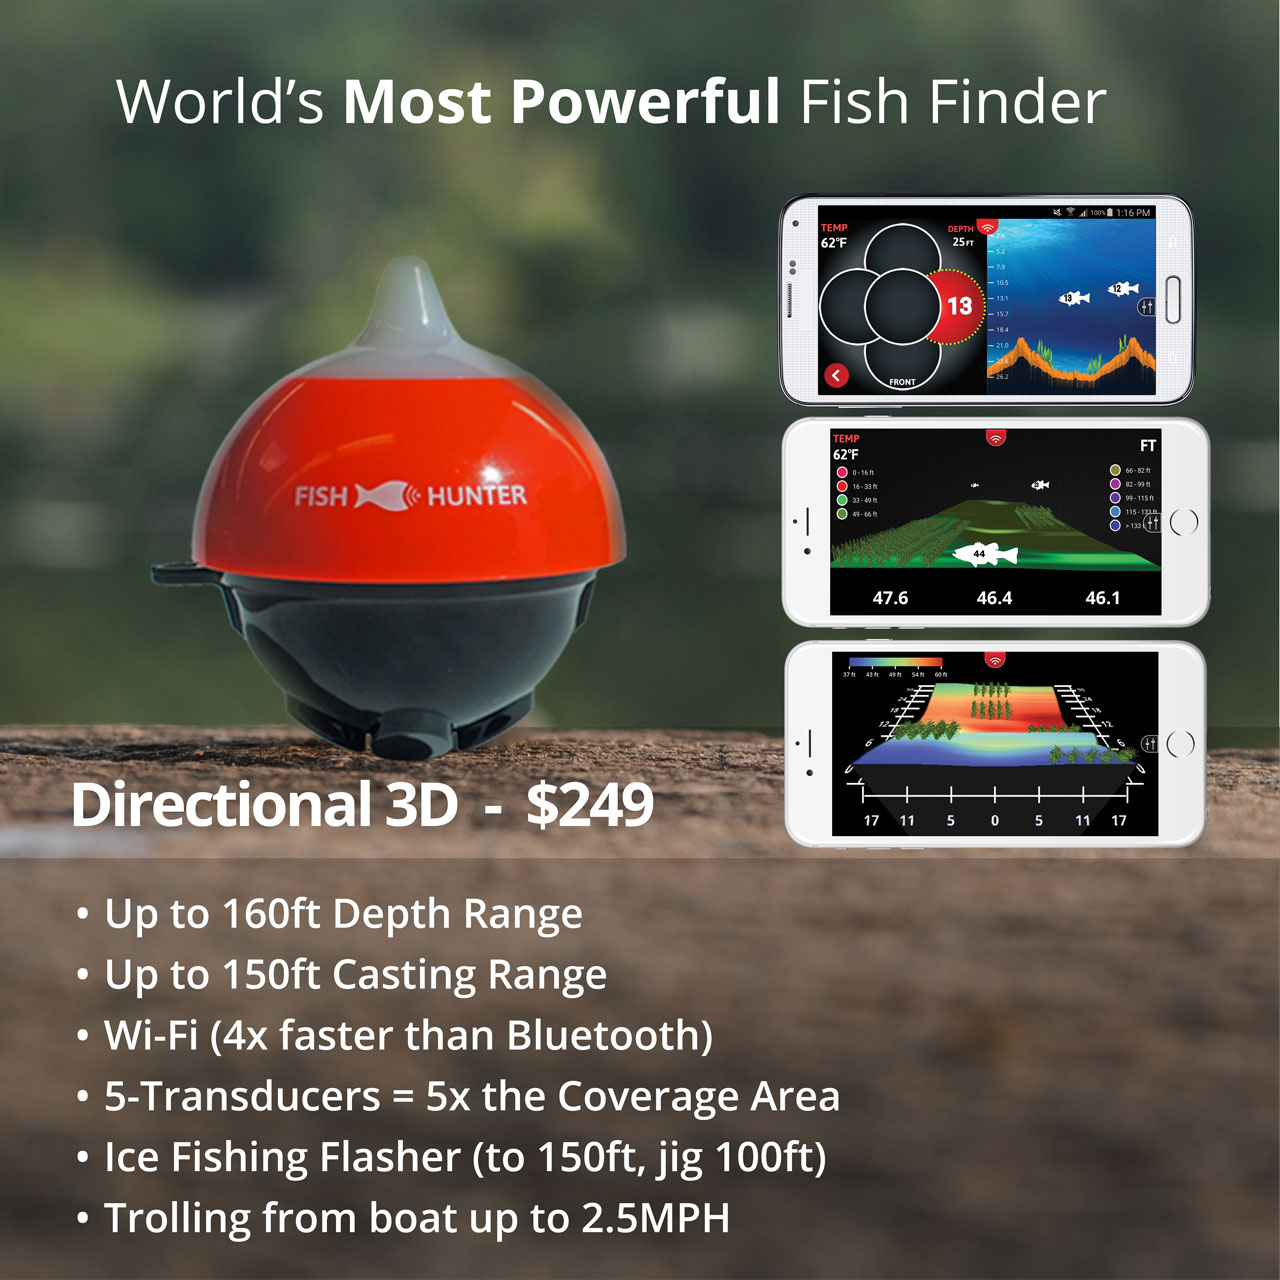 FishHunter™ Directional 3D - with border